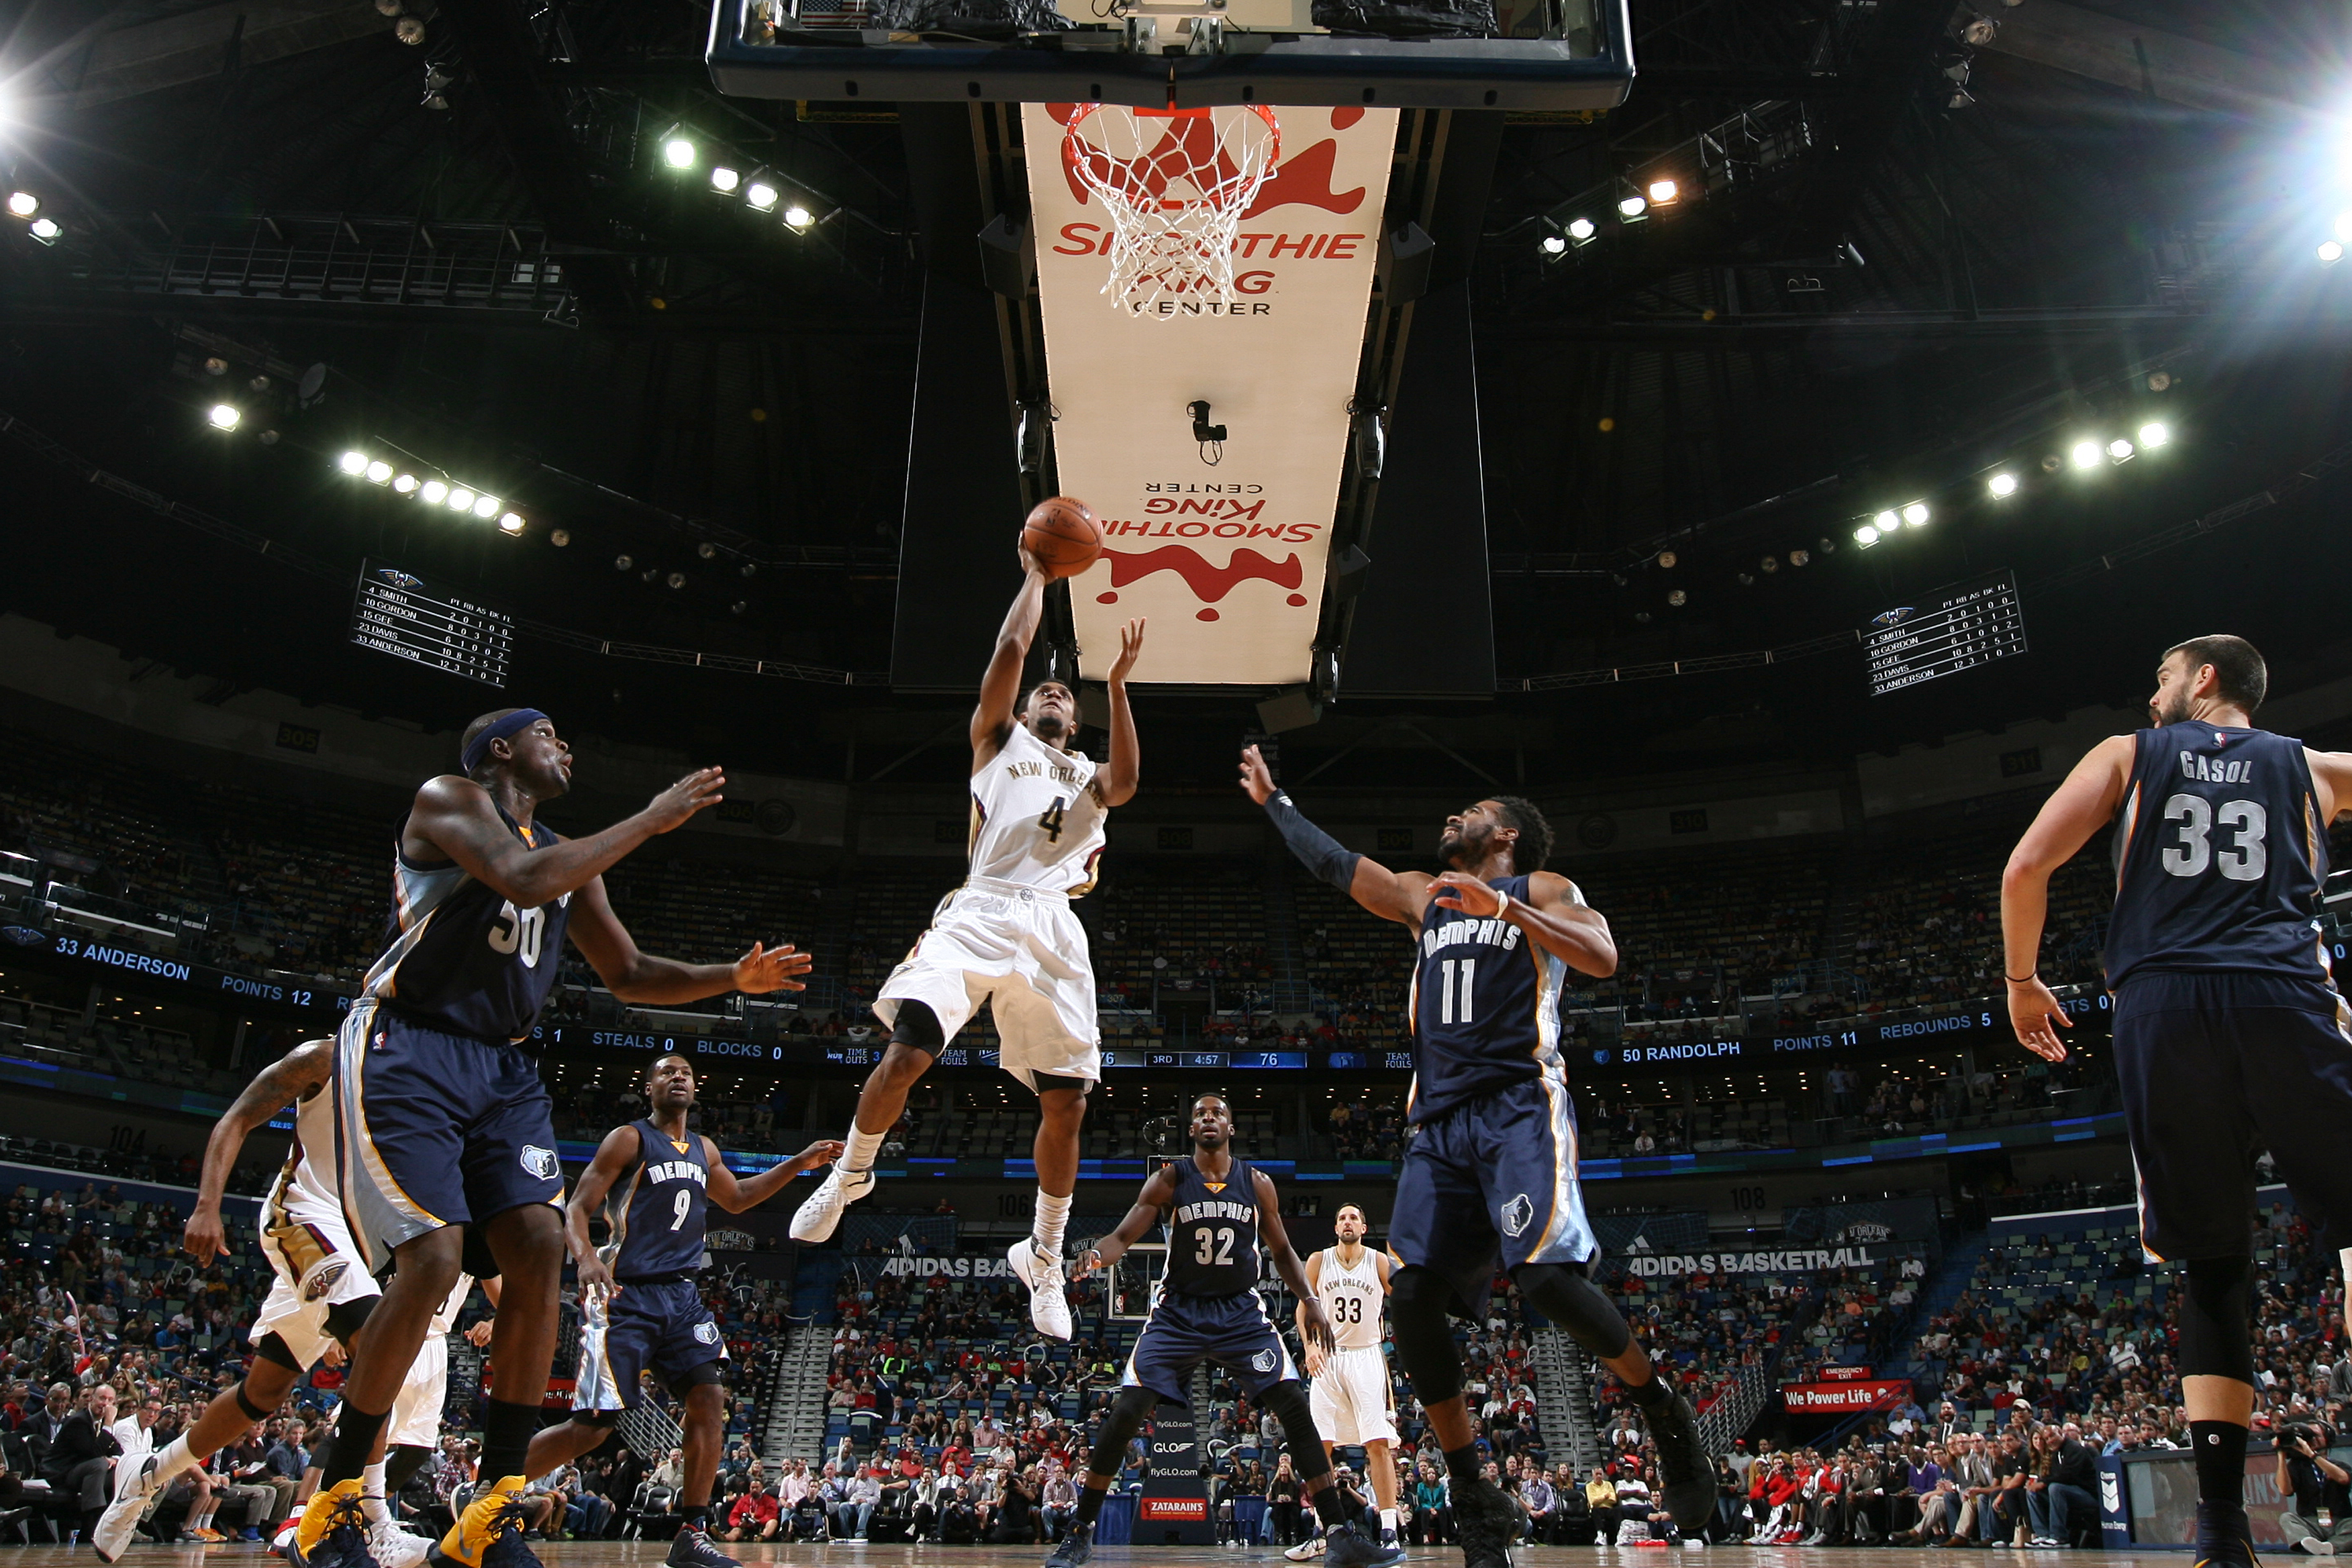 NEW ORLEANS, LA - DECEMBER 1:  Ish Smith #4 of the New Orleans Pelicans goes to the basket against the Memphis Grizzlies on December 1, 2015 at the Smoothie King Center in New Orleans, Louisiana. (Photo by Layne Murdoch/NBAE via Getty Images)